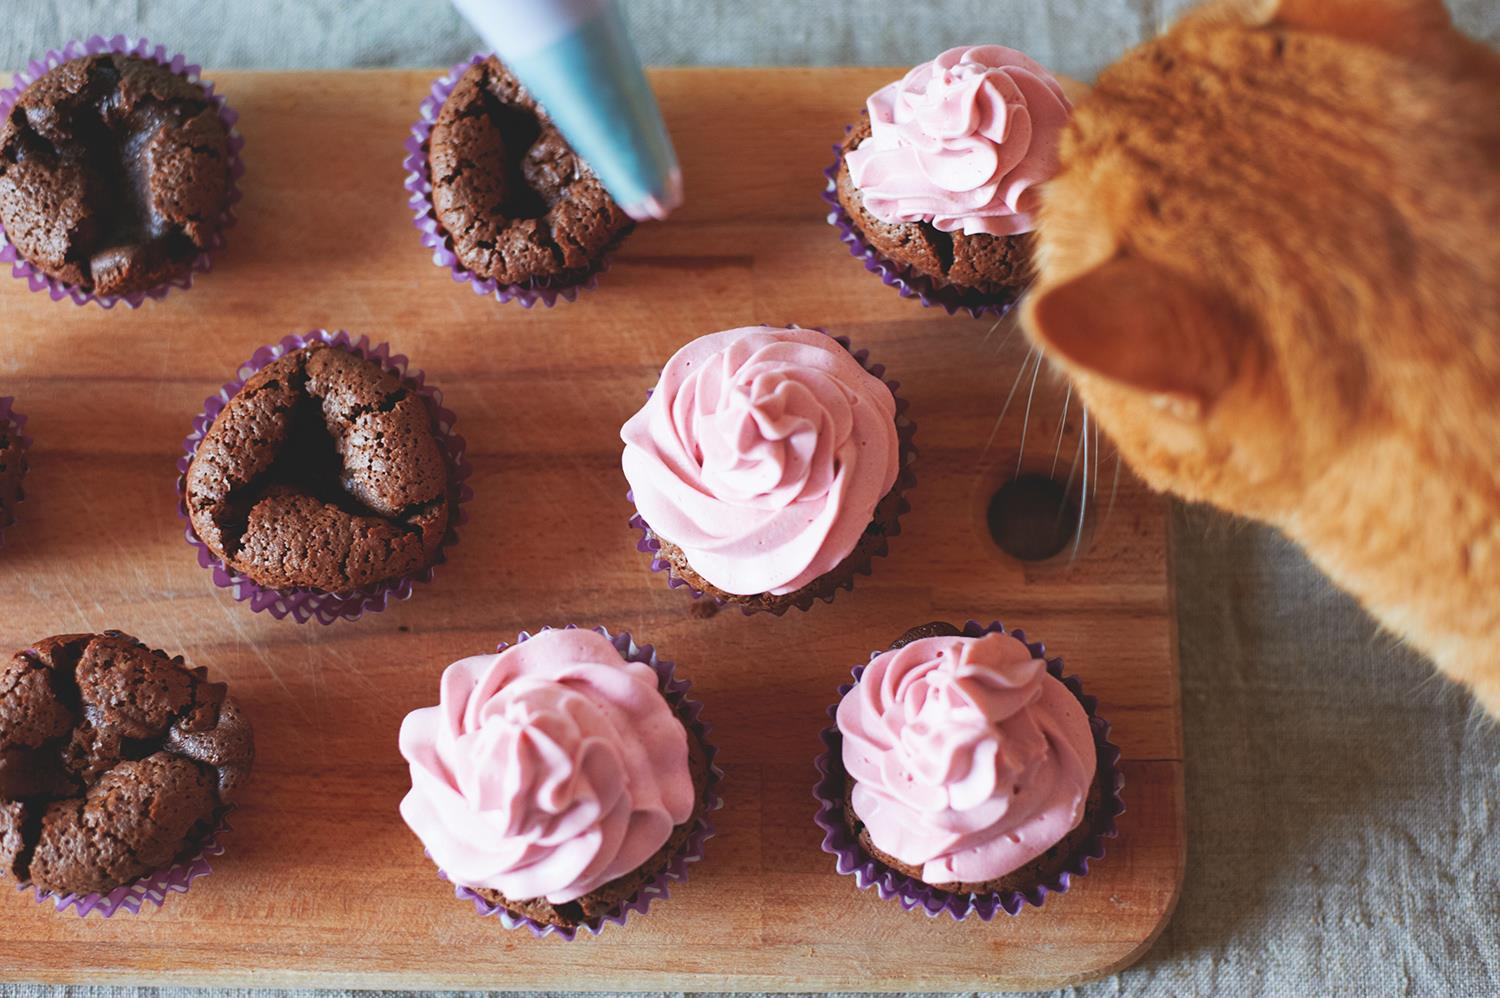 Help animals by baking a difference for BC SPCA's National Cupcake Day™